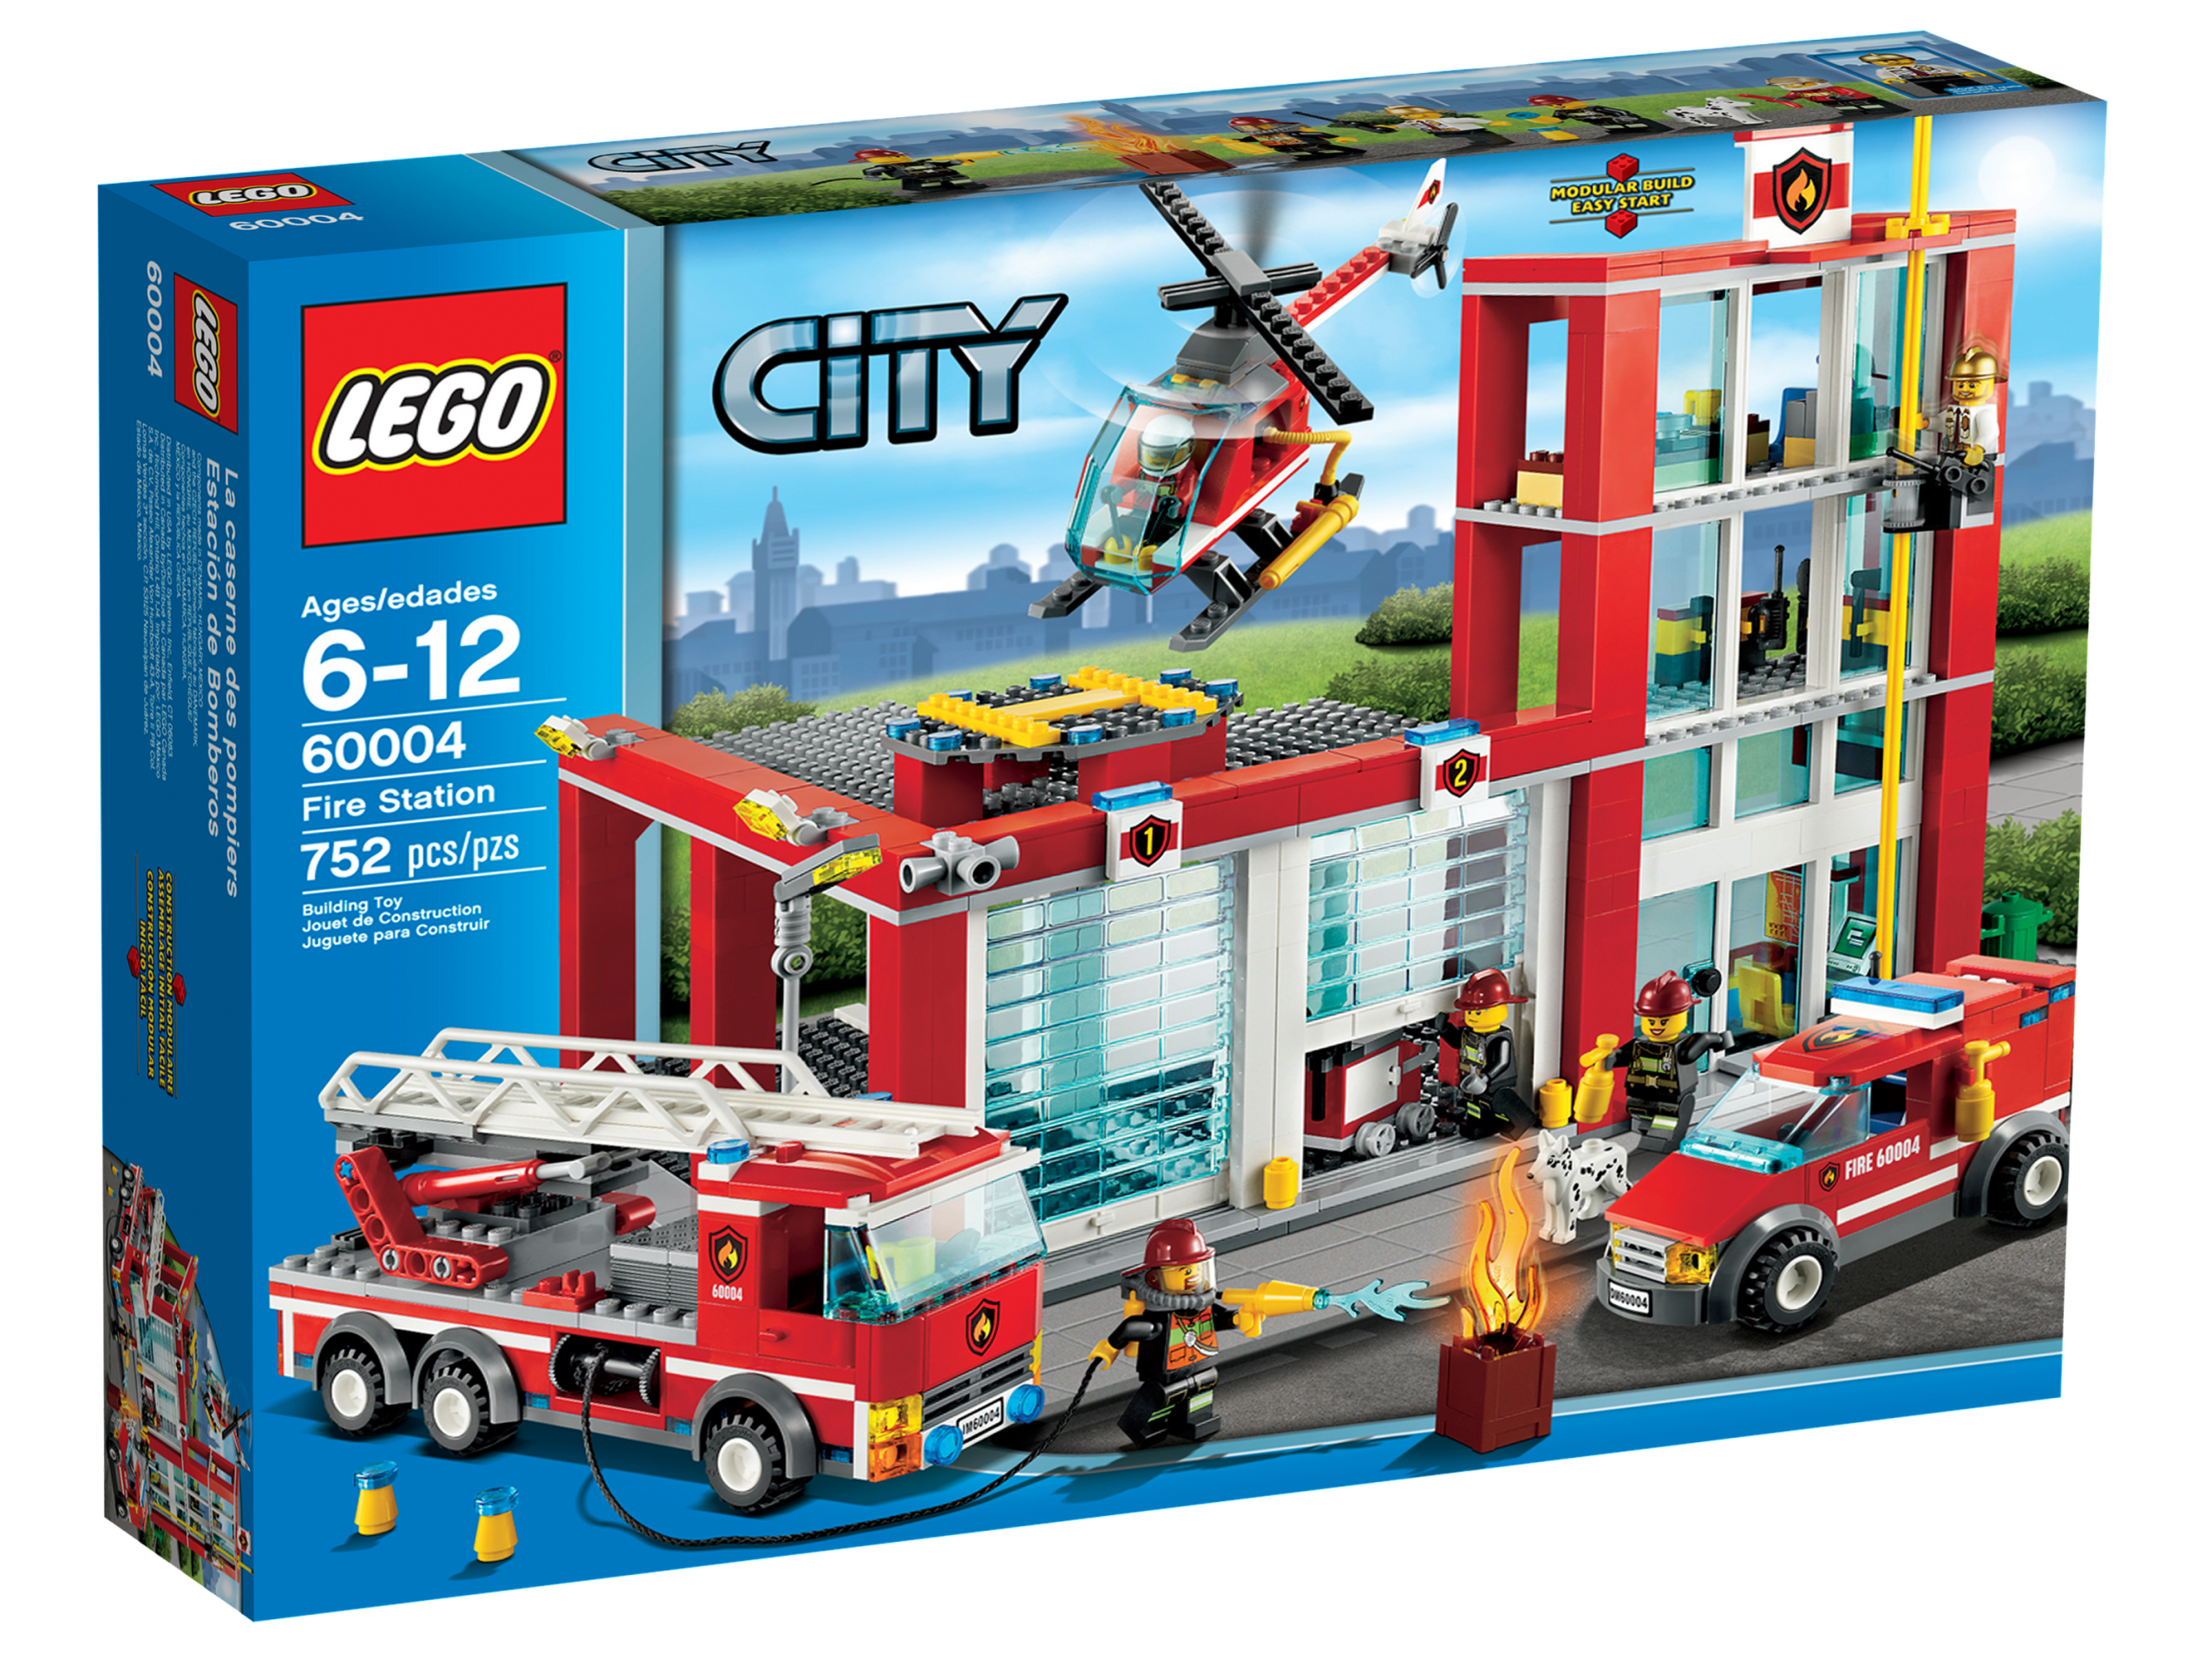 60004 Fire Station - Brickipedia, the LEGO Wiki